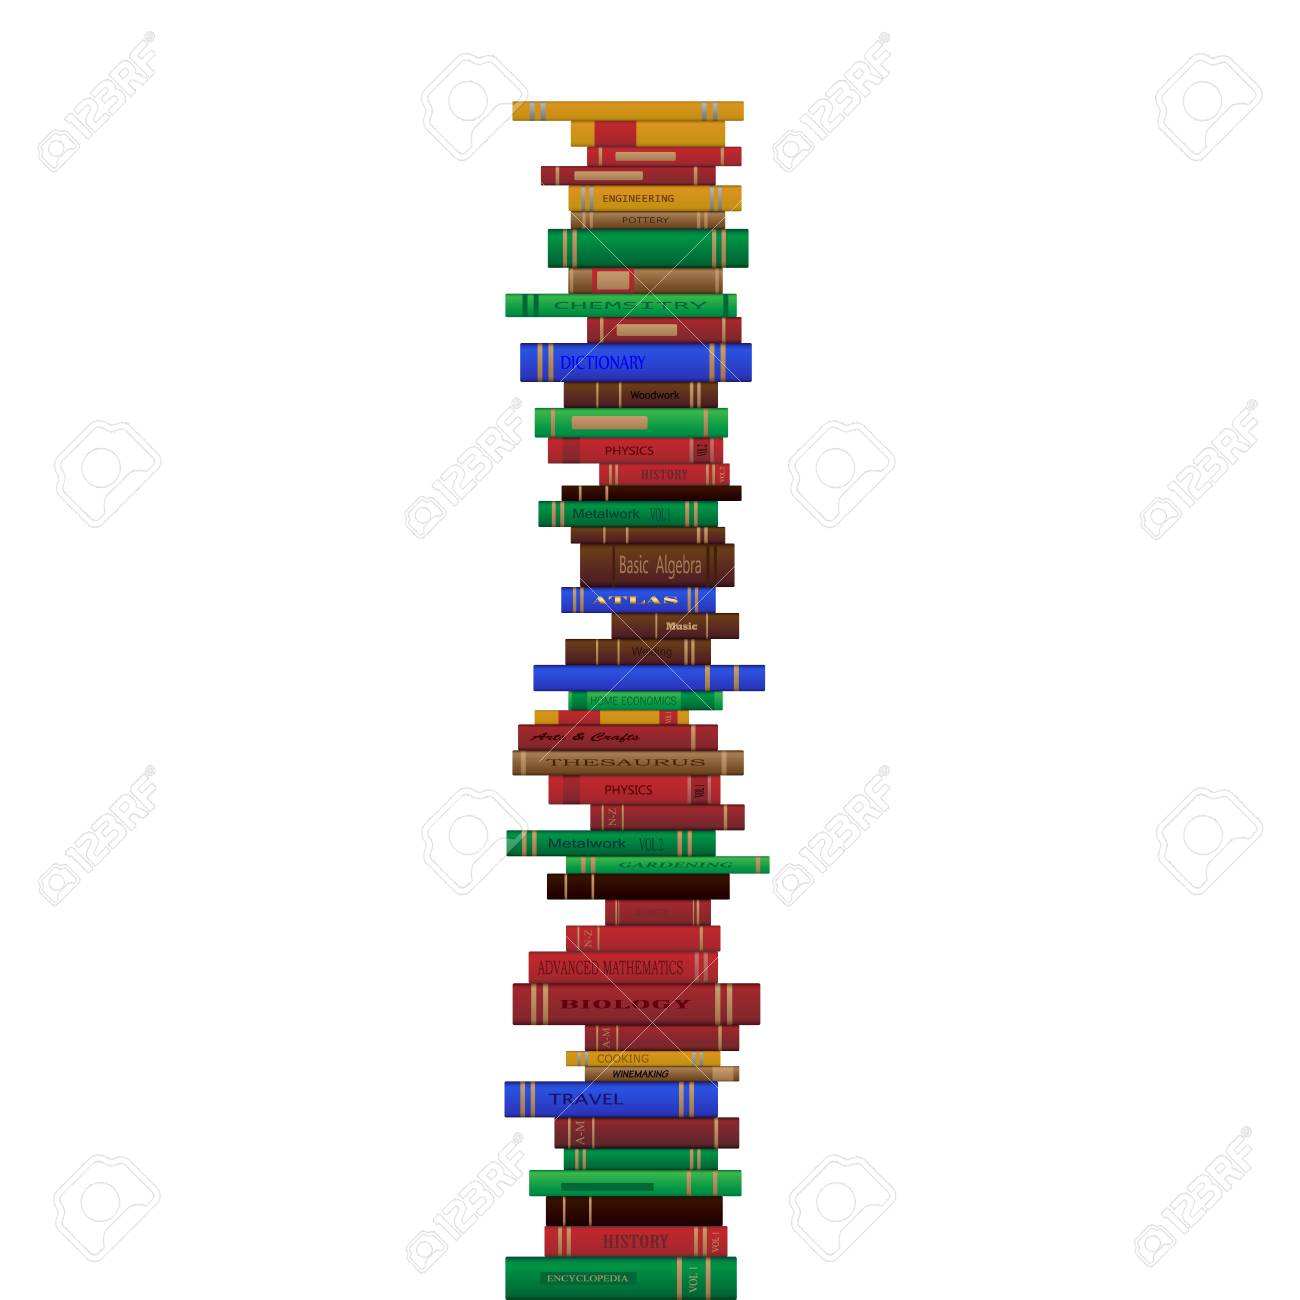 different books in a tall stack illustration royalty free cliparts